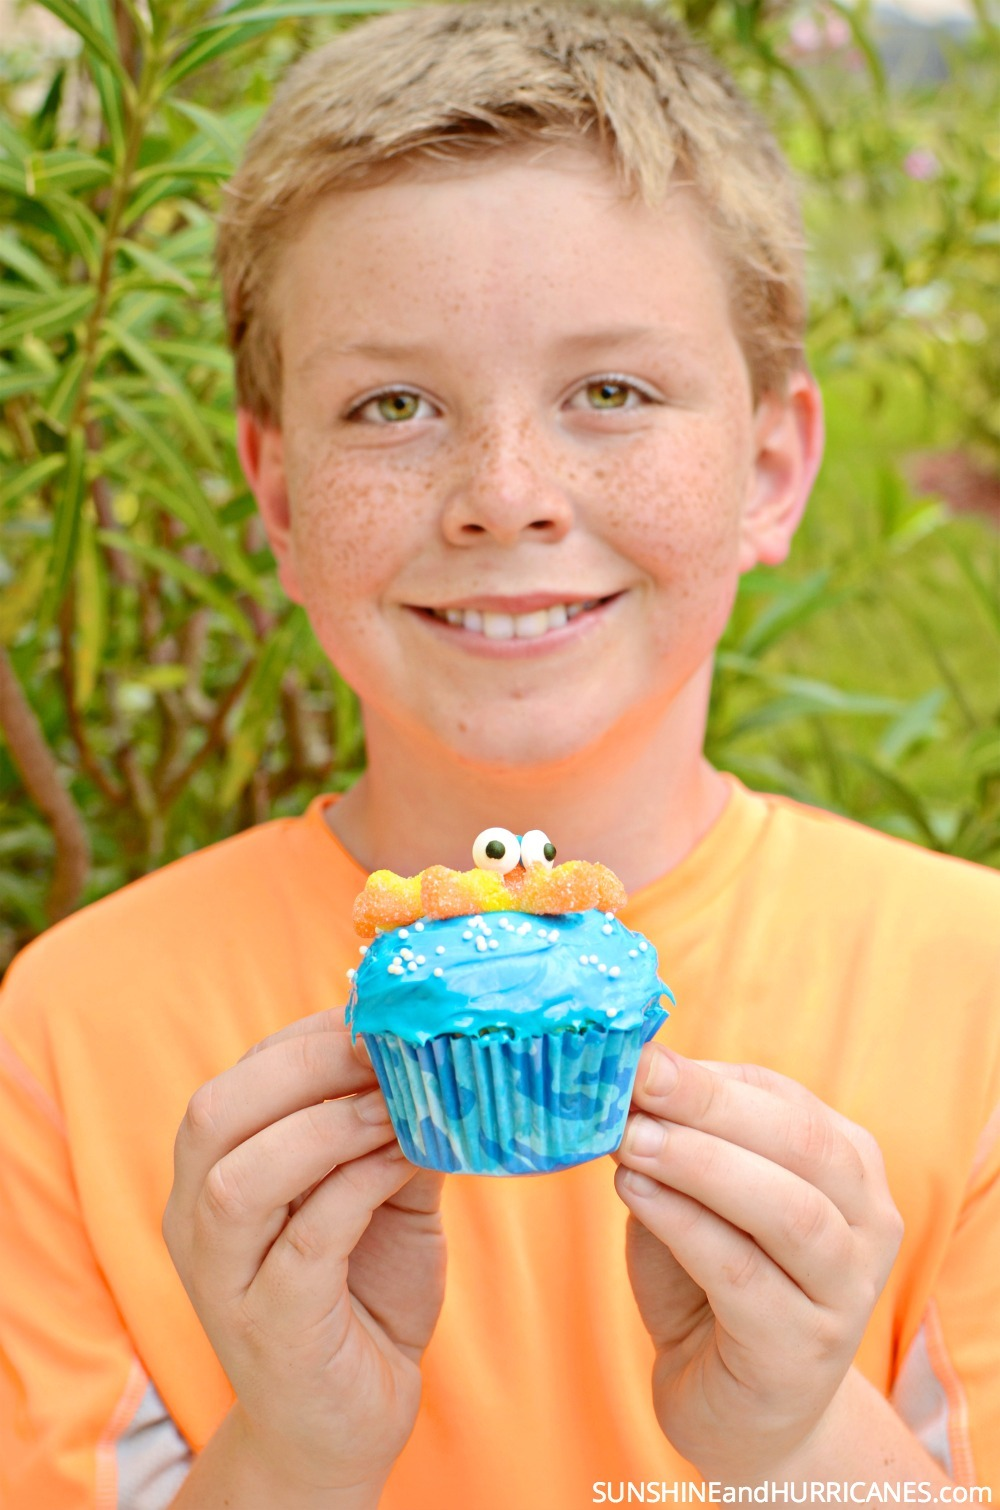 Whether you are inspired by the new Finding Dory movie or are just planning an under the sea birthday party, these adorable octopus cupcakes would be perfect! Fun and festive they're a sweet treat that is sure to please kids of all ages. Finding Dory Cupcakes from SunshineandHurricanes.com